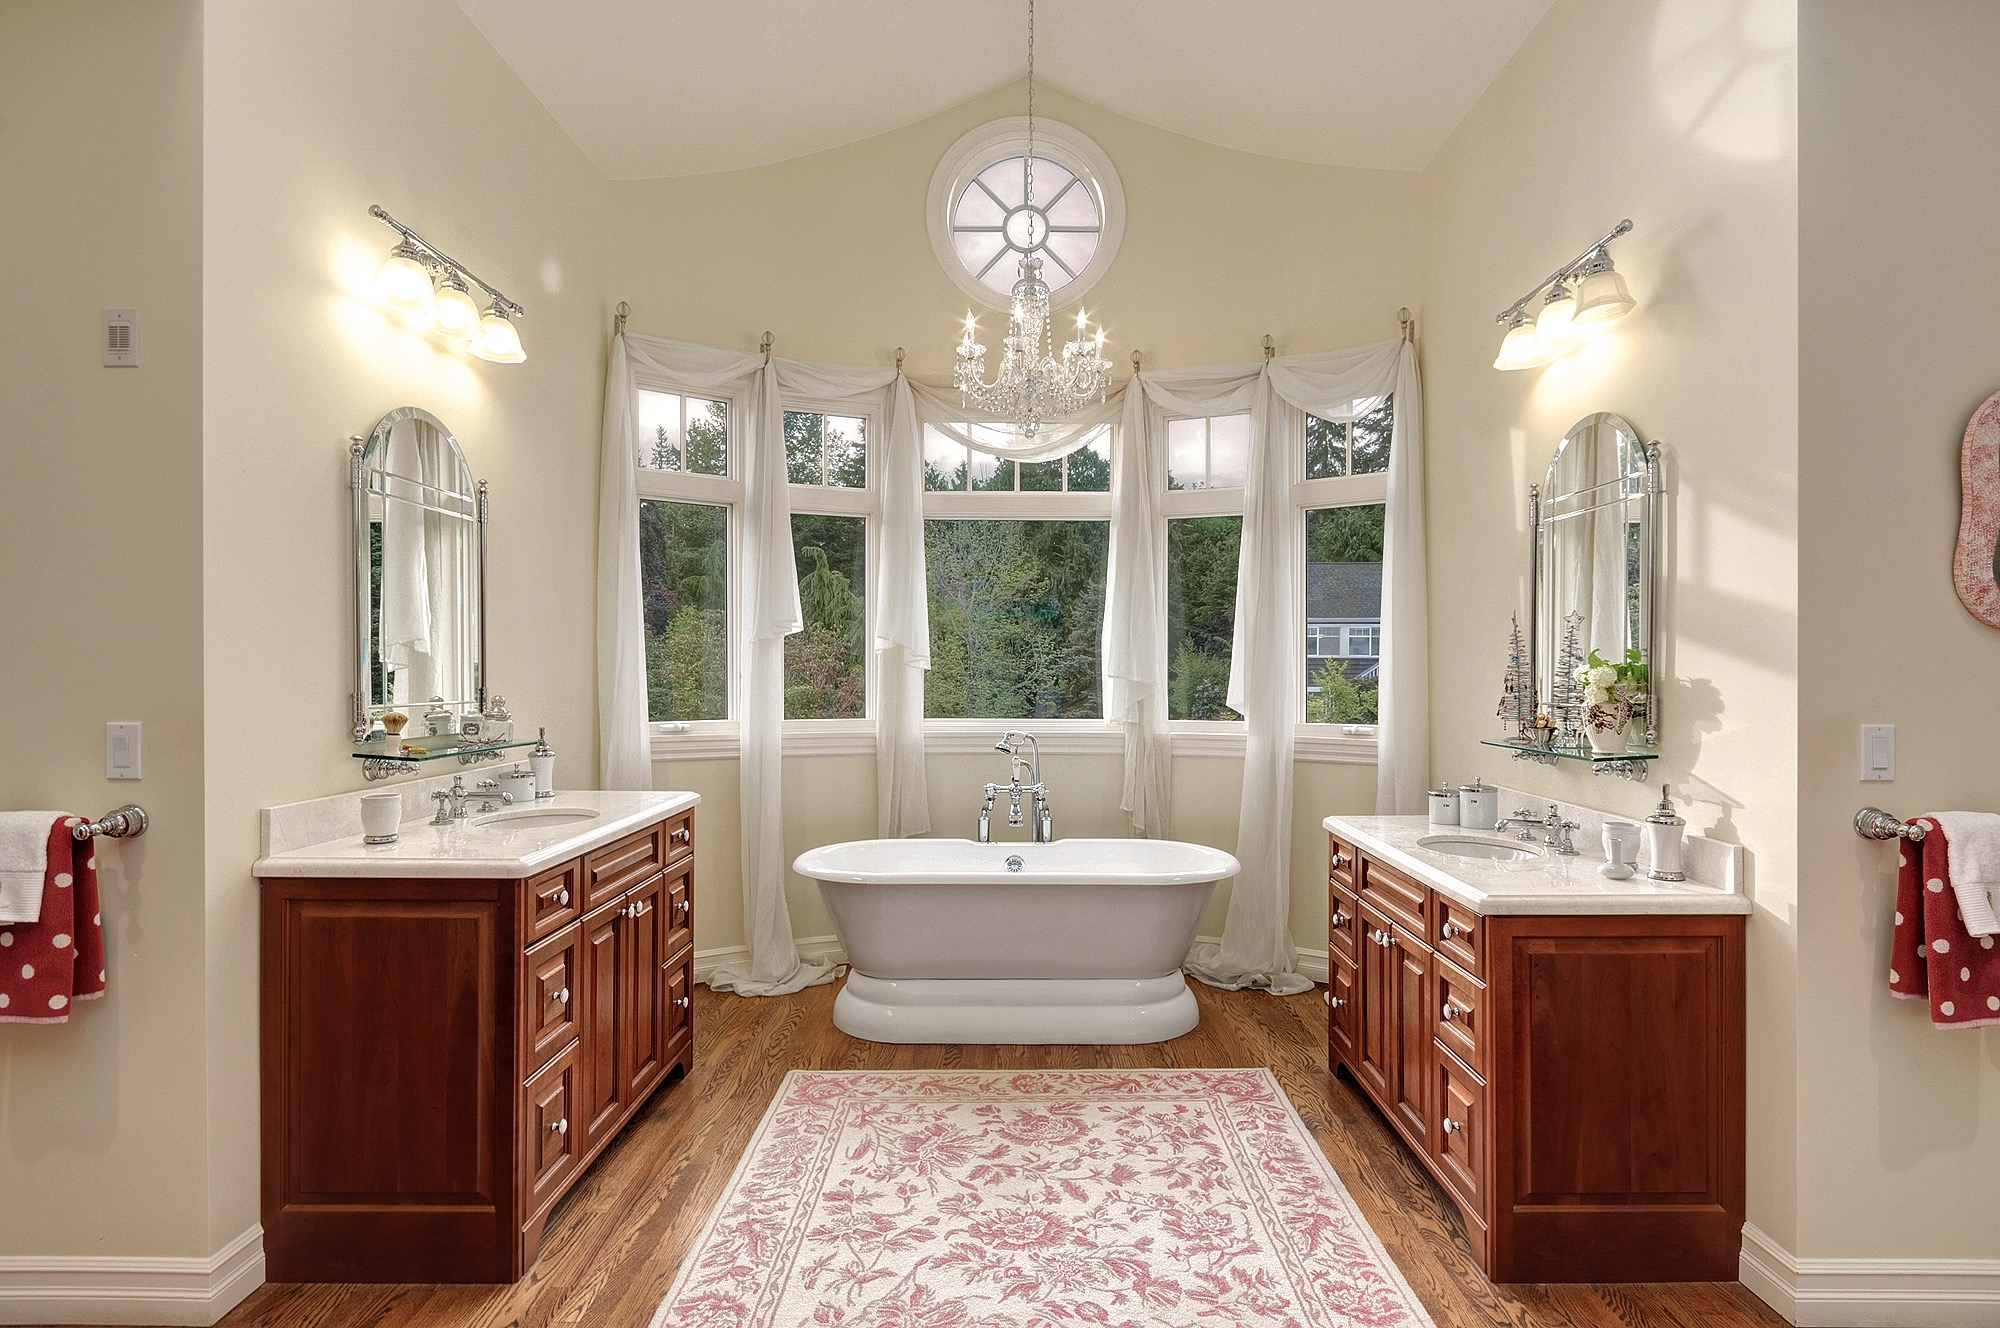 Glamorous And Functional Classic Bathroom Interior With Soaking Tub (Image 22 of 29)